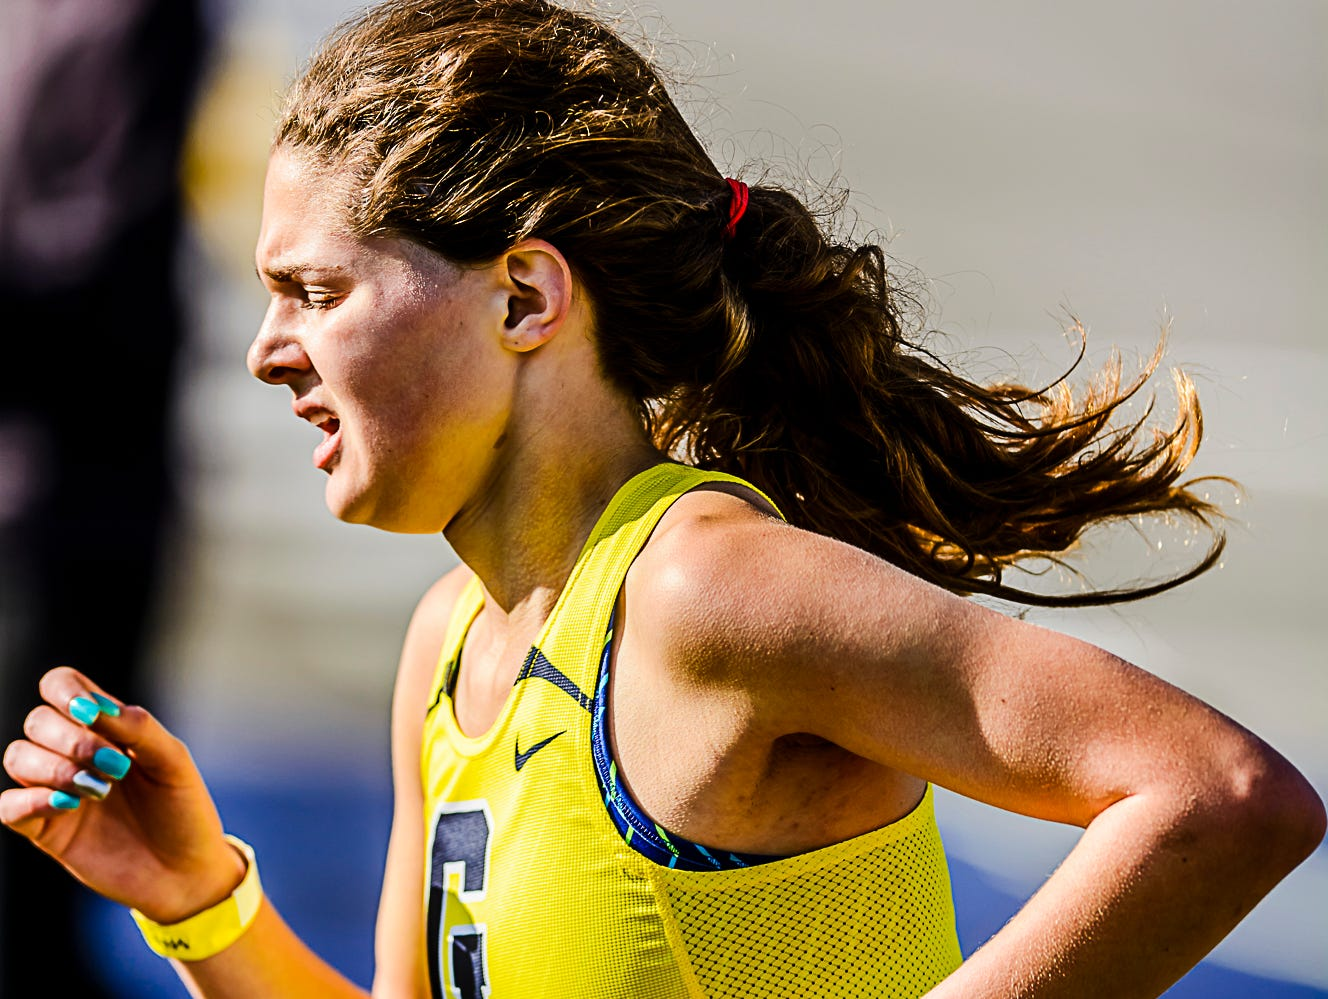 Grand Ledge's Jenna Magness enters the season as one of the area's top runners.